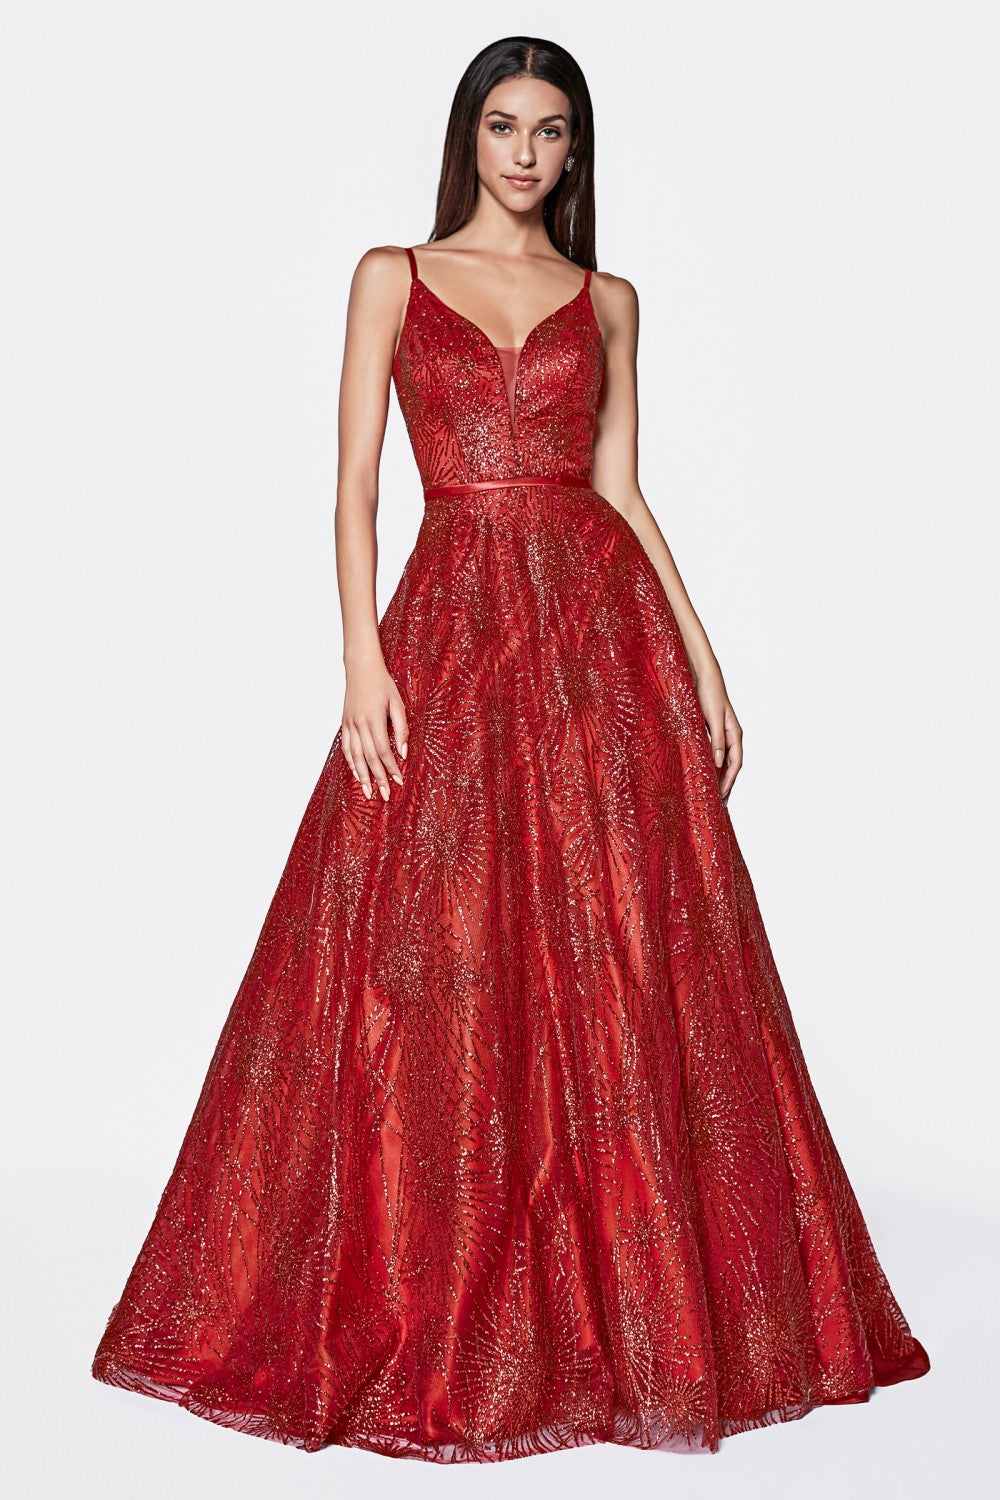 Thin Strap Ball Gown With Glitter Details And Open Back